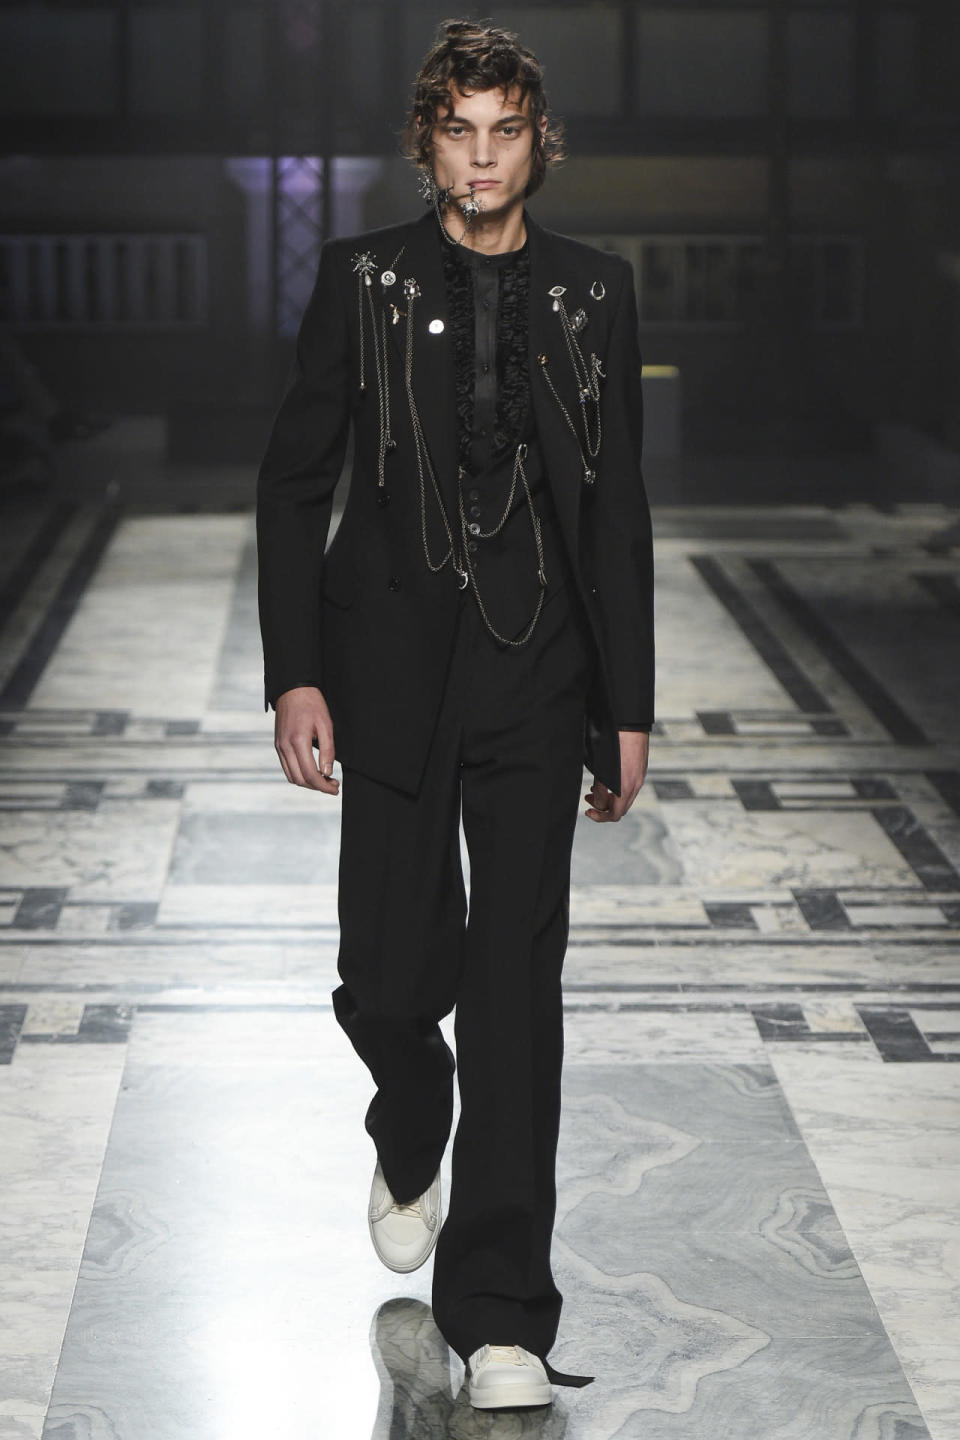 <p>Mixing the tailoring and precision of the Victorian military uniforms with the punk era, designer, Sarah Burton's Fall 2016 collection for Alexander McQueen was piercing to say the least.<i> Photo: Getty Images</i></p>